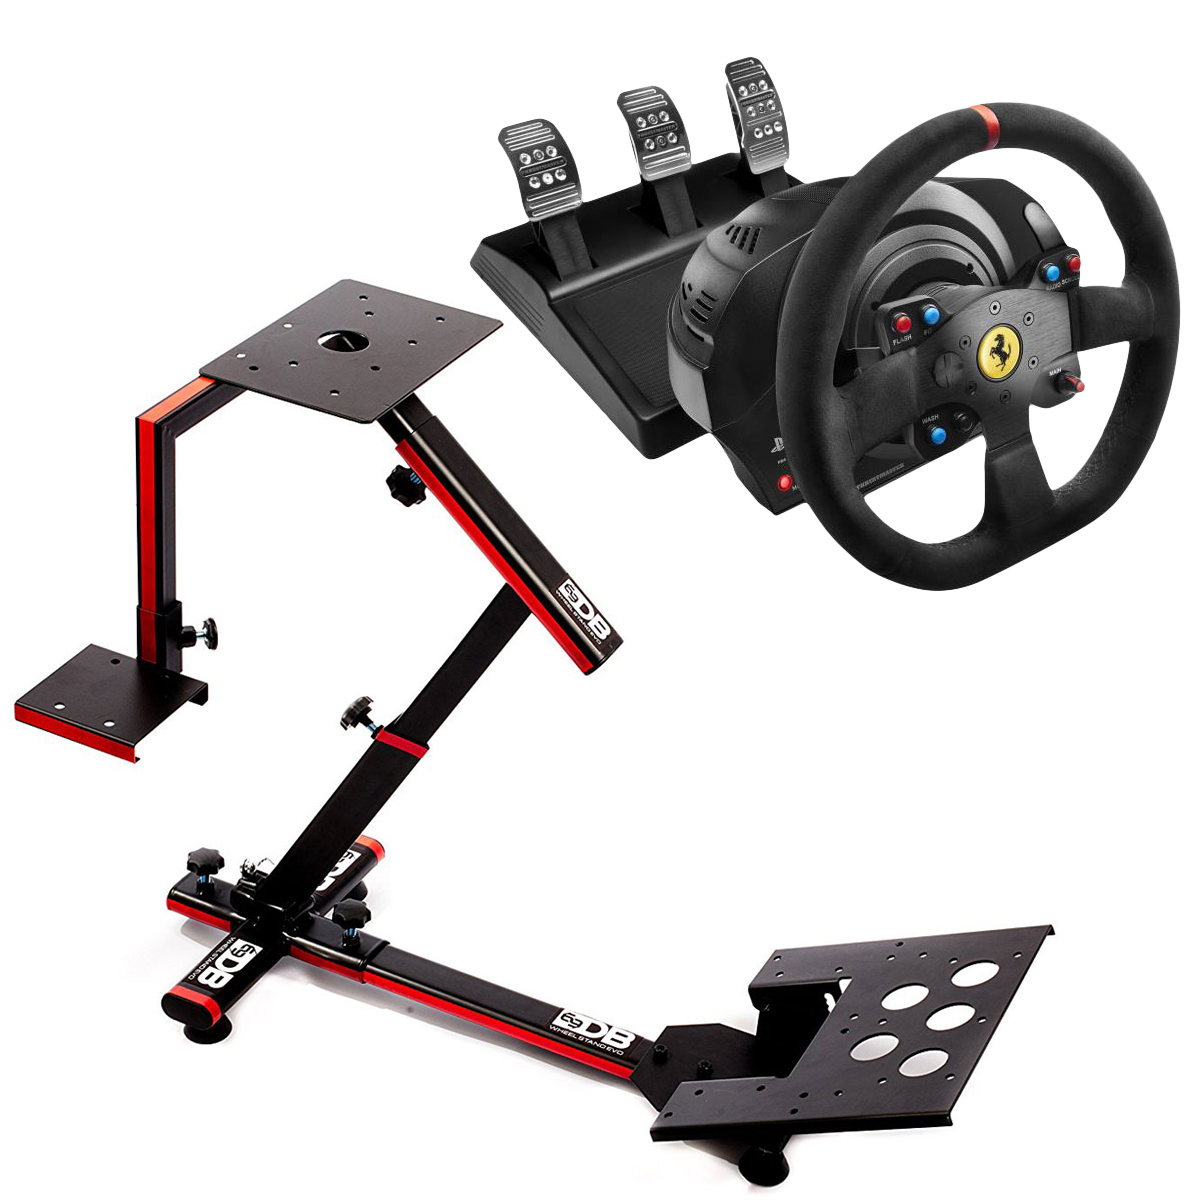 thrustmaster t300 ferrari alcantara edition 69db wheel stand evo volant pc thrustmaster sur. Black Bedroom Furniture Sets. Home Design Ideas